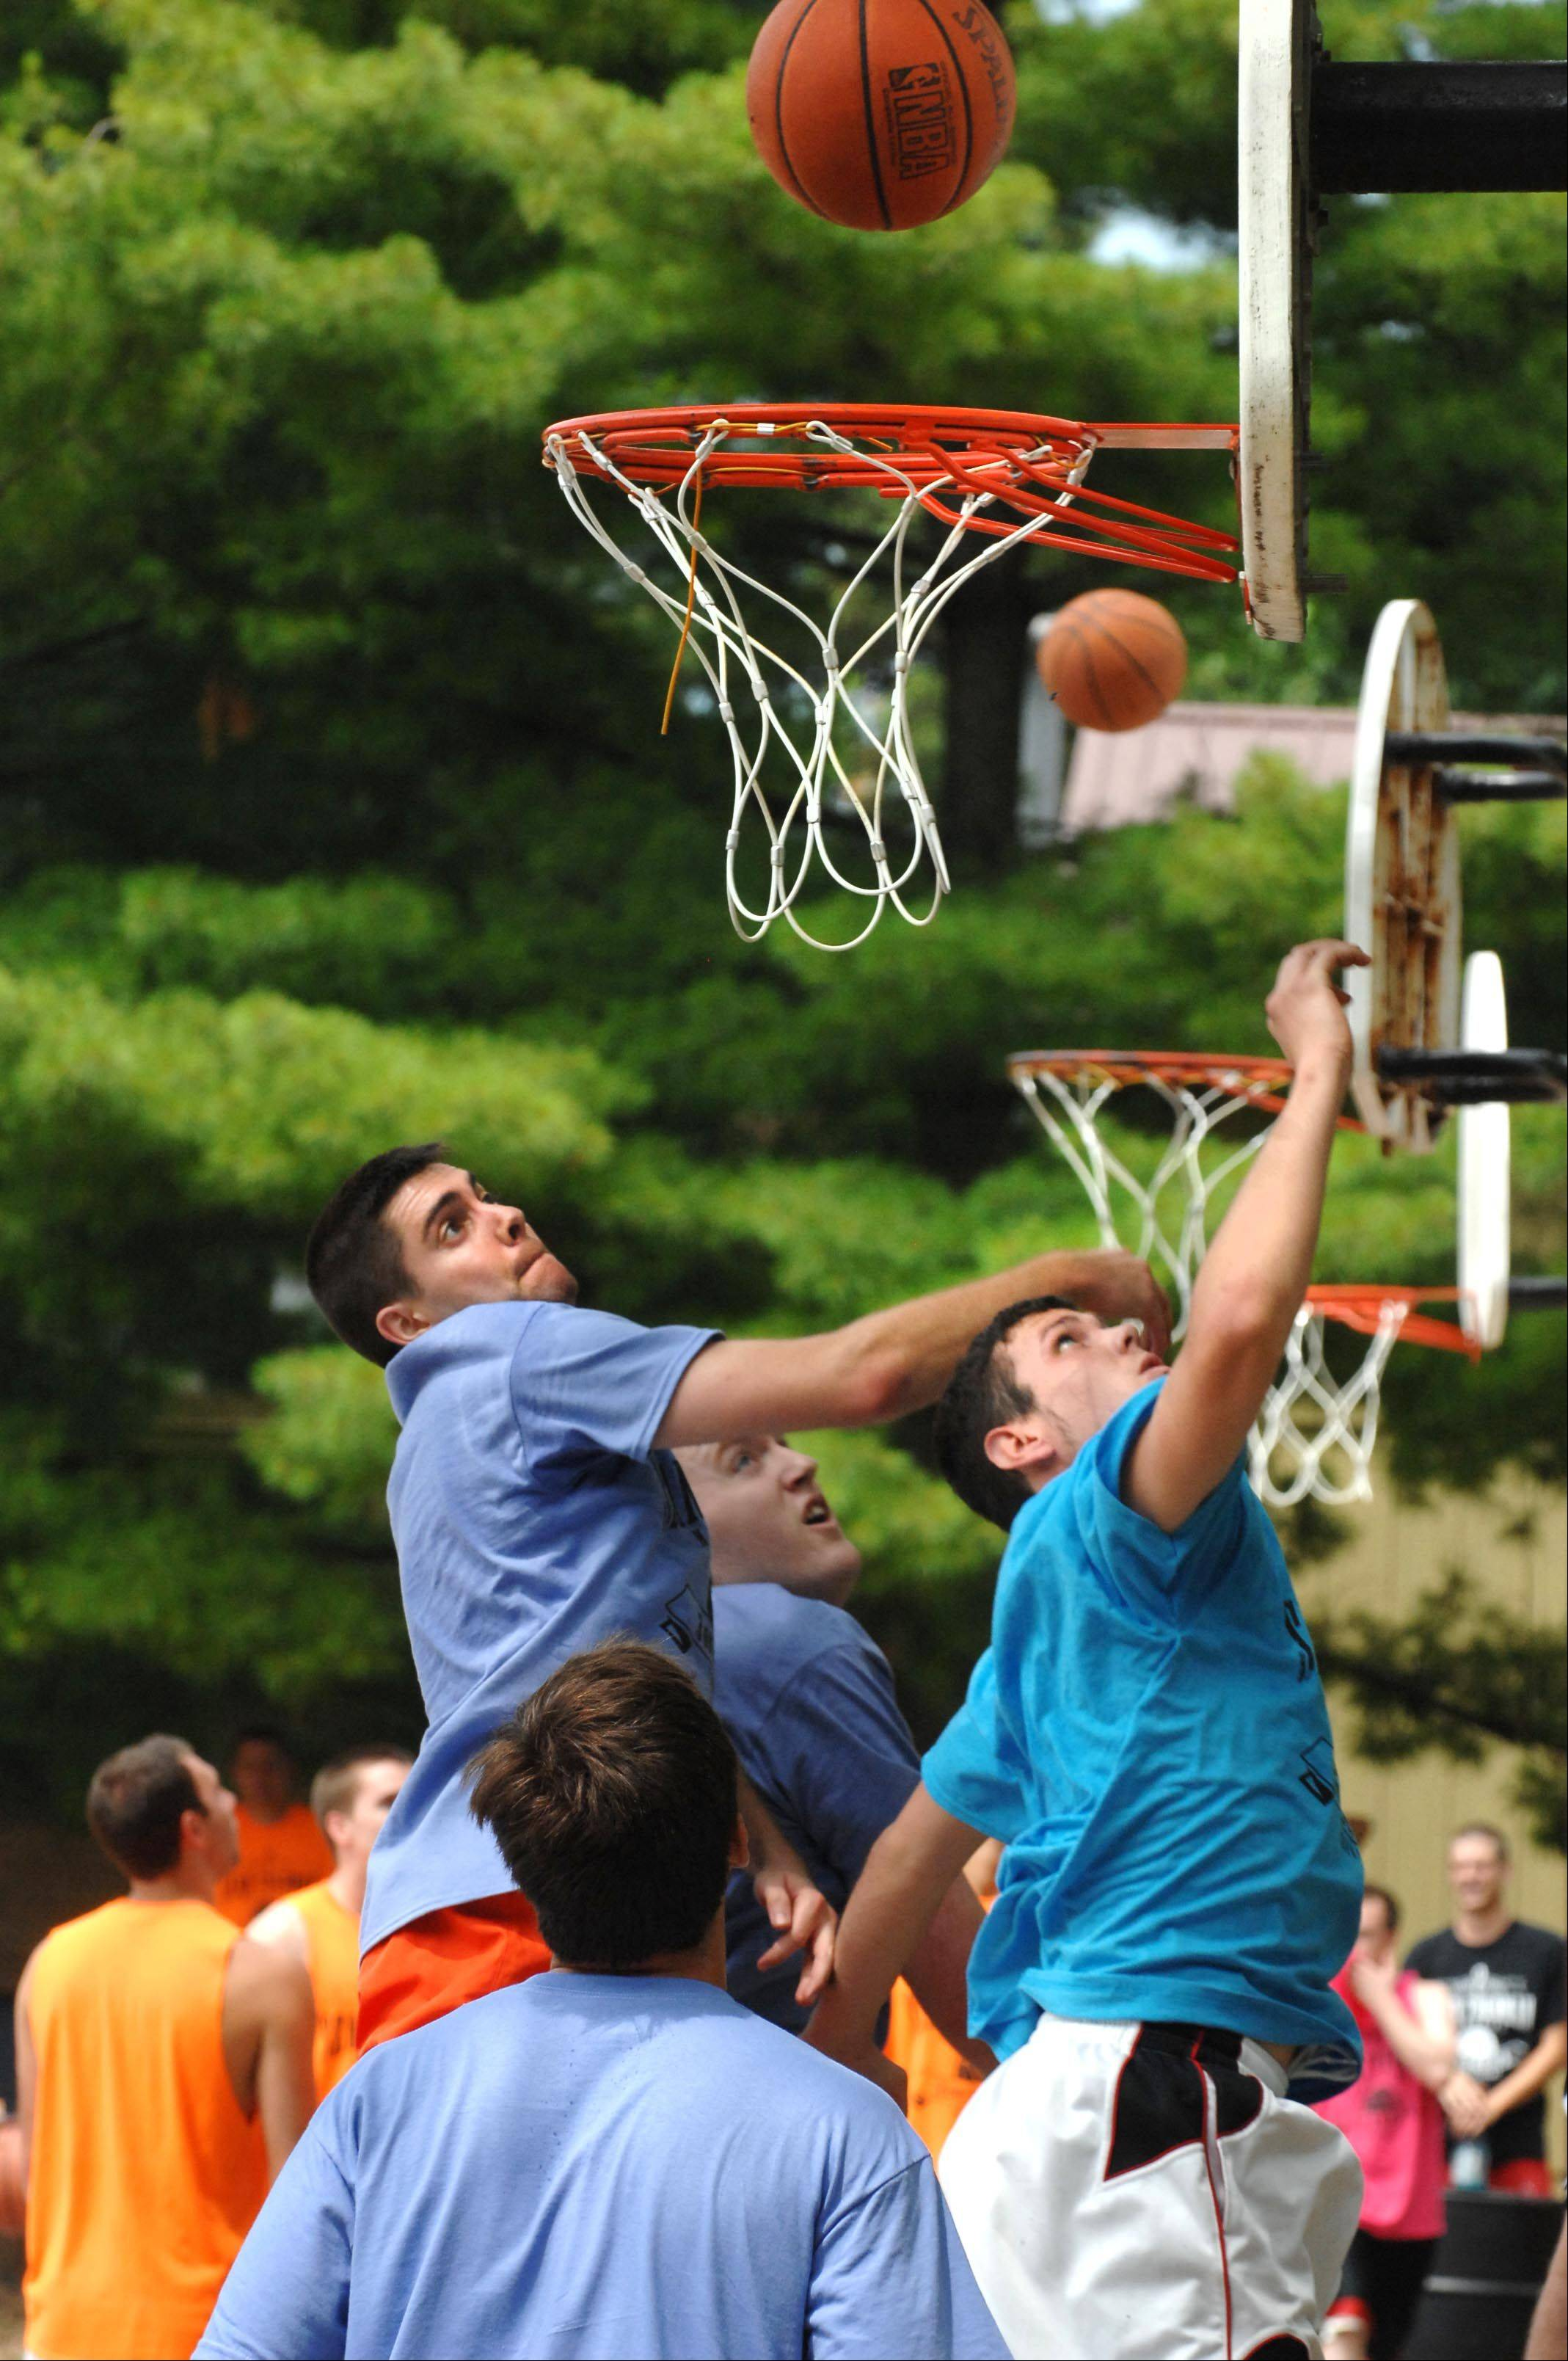 Players scramble for a rebound Sunday at the second annual Sean Toedman Memorial 3-on-3 Basketball Tournament at Lions Park in East Dundee. Teams competed and raised money to benefit St. Jude Children's Research Hospital in Memphis. Sean Toedman was a 12-year-old boy who died of a brain tumor.